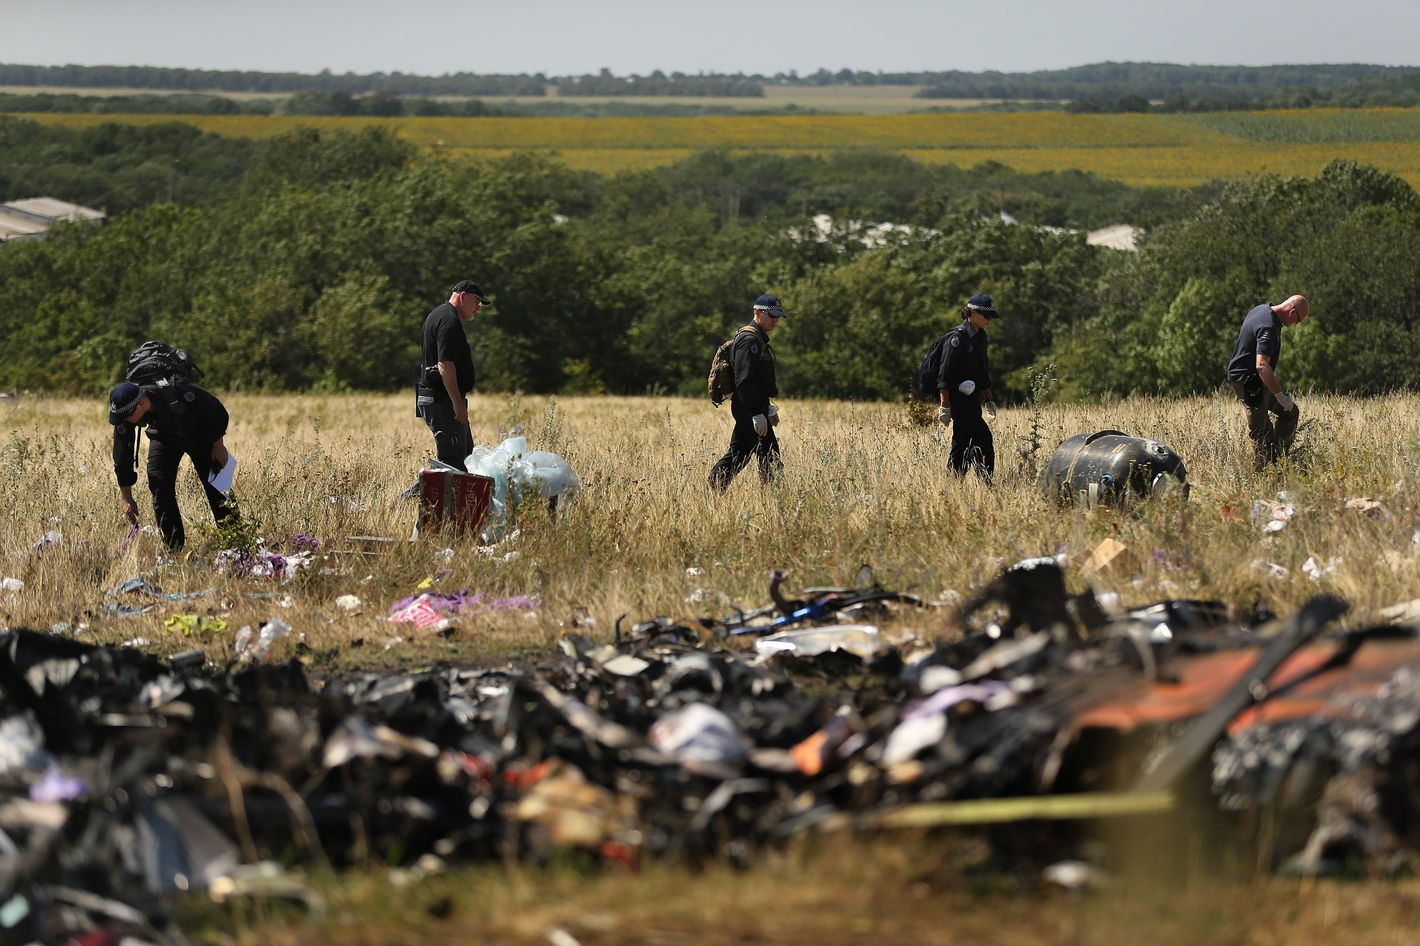 Australian Federal Police officers and their Dutch counterparts collect human remains and personal belongings from the MH17 Malaysian Airlines crash site in the fields outside the village of Grabovka, Eastern Ukraine, August 1, 2014. This is the first time a full forensic party searches the site.  (Photo by Kate Geraghty/The Sydney Morning Herald/Fairfax Media via Getty Images).